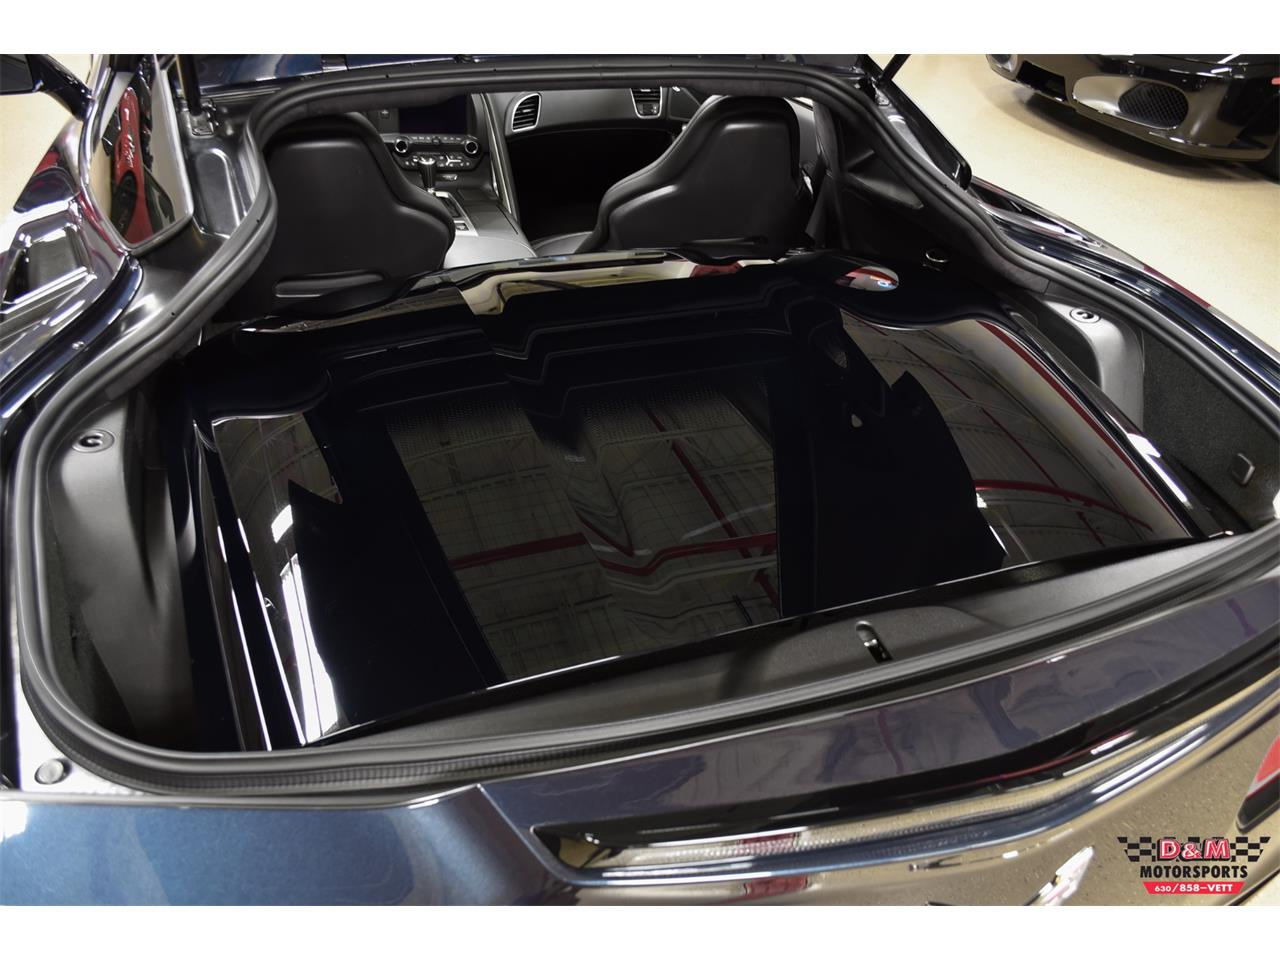 Large Picture of '15 Chevrolet Corvette located in Illinois - $45,995.00 Offered by D & M Motorsports - QGAK